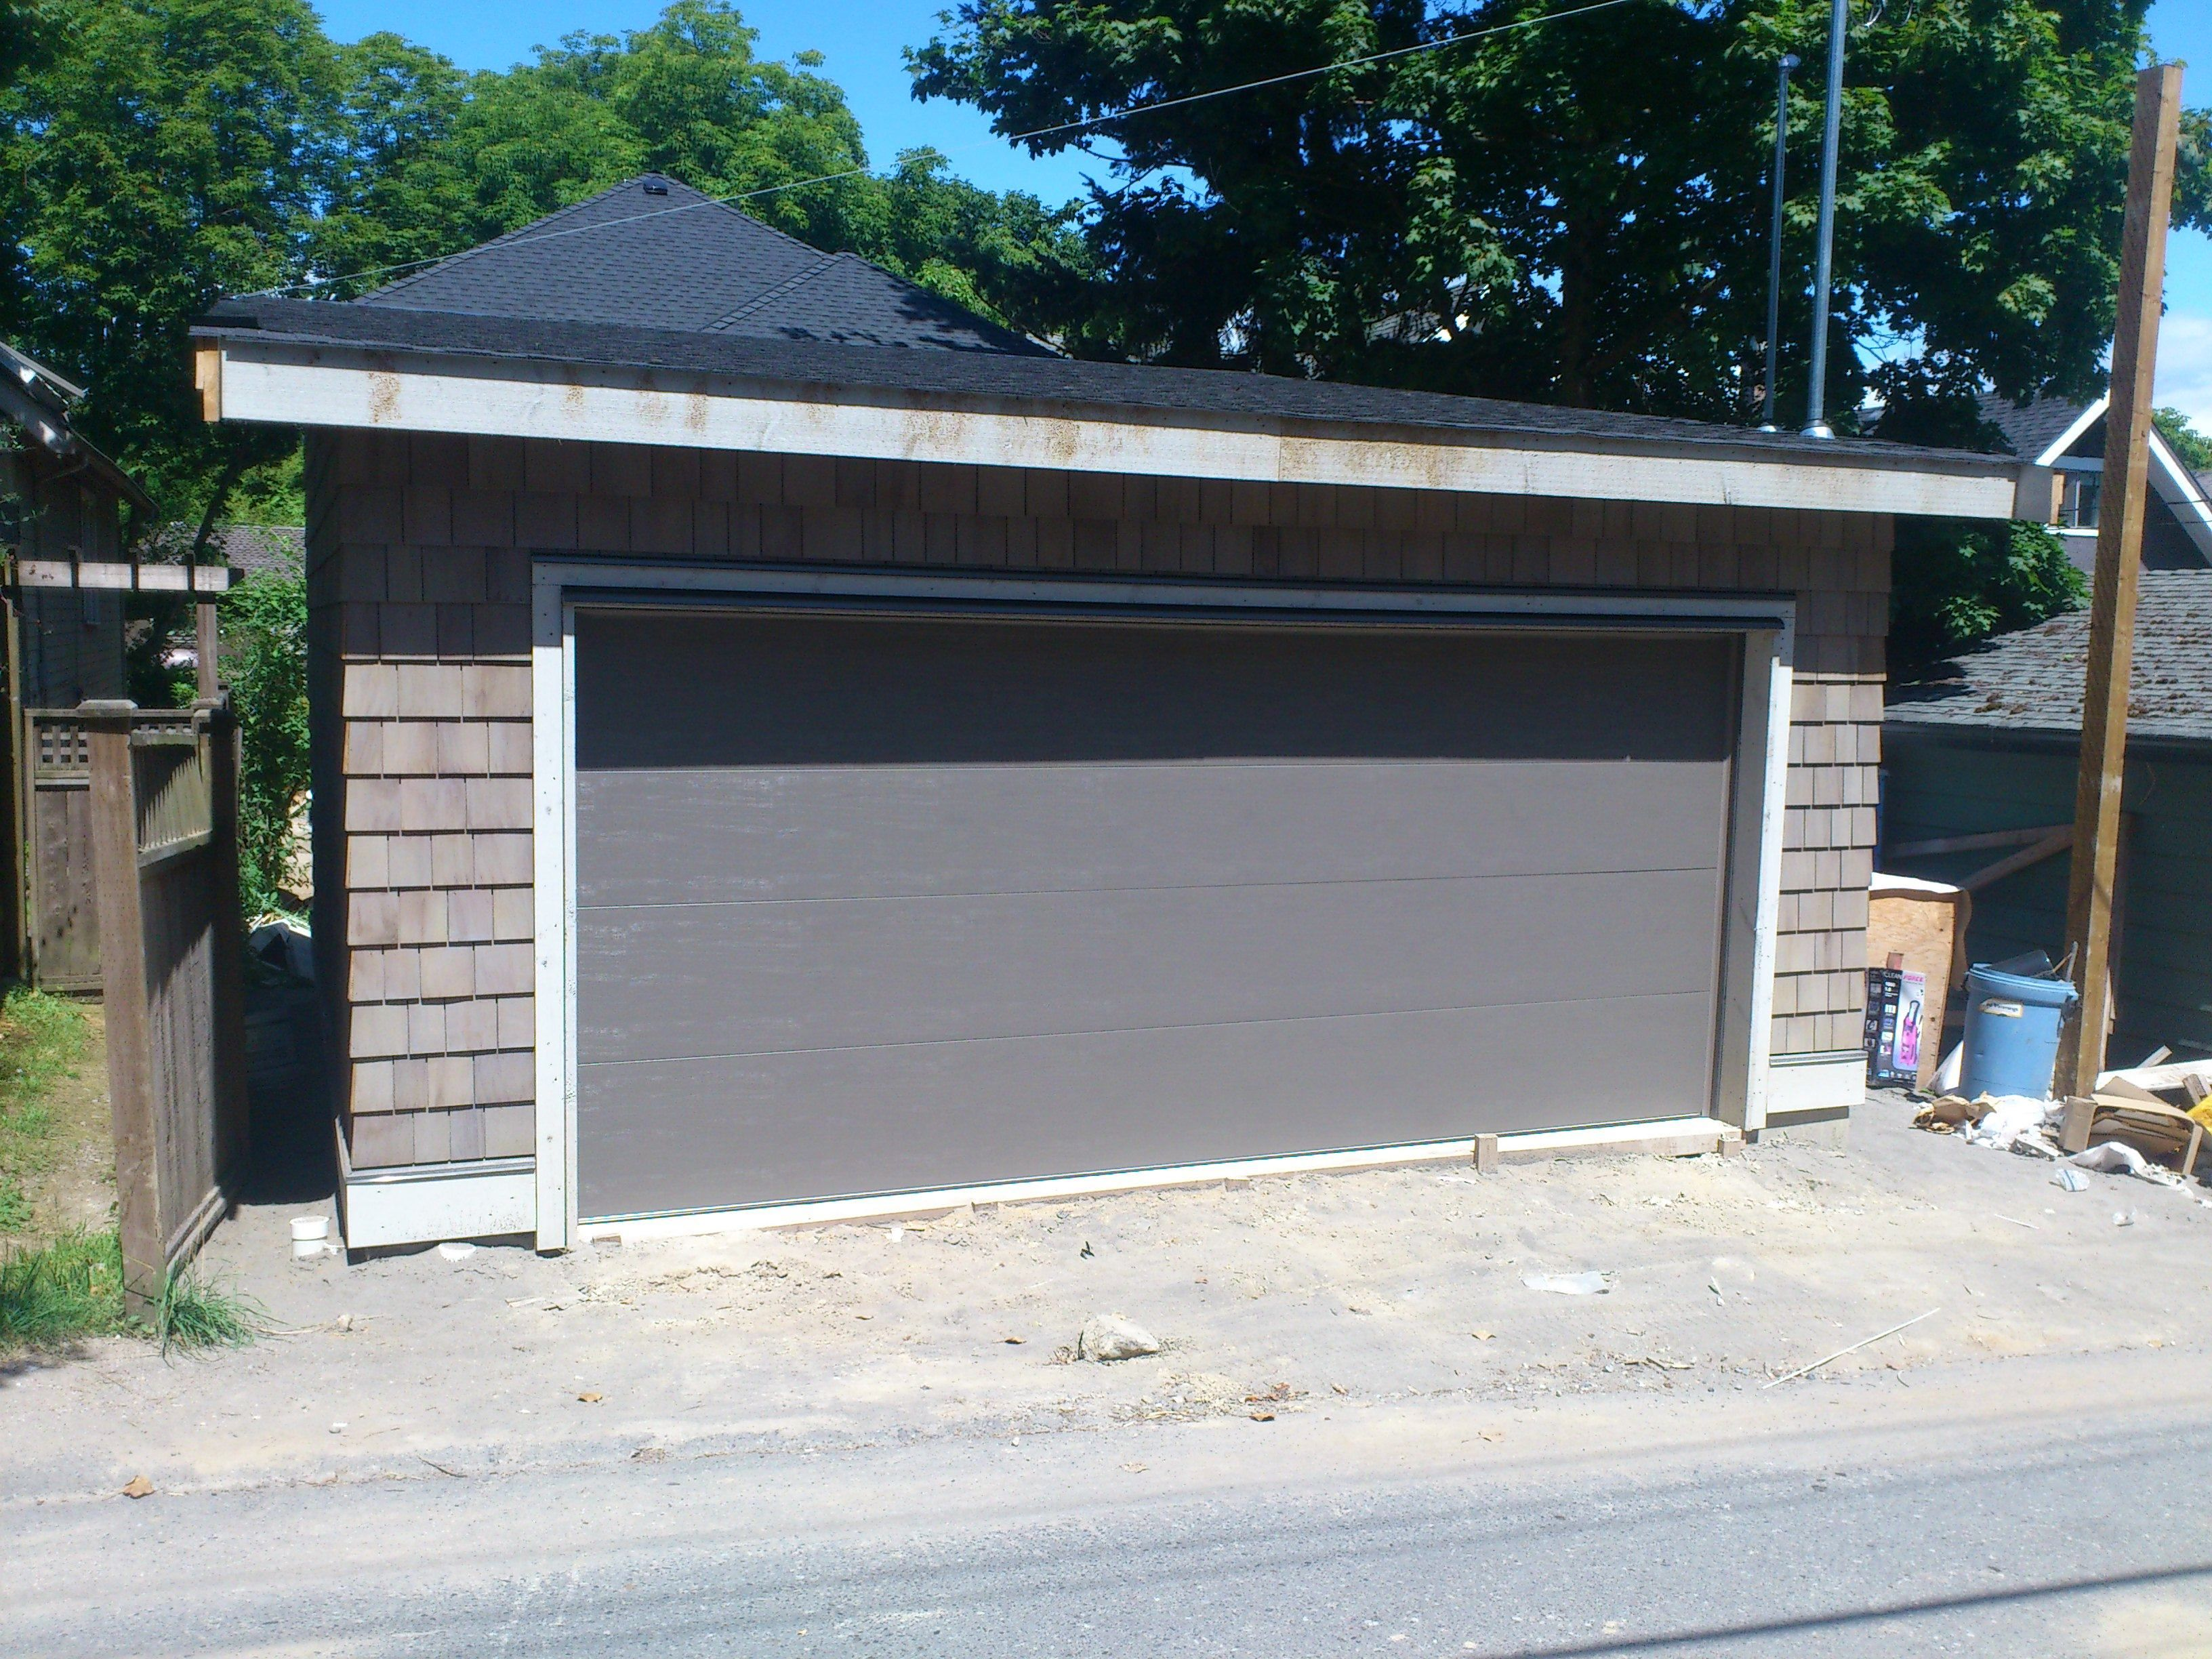 Clopay Classic Series Premium Insulated 1 38 Garage Door In Bronze